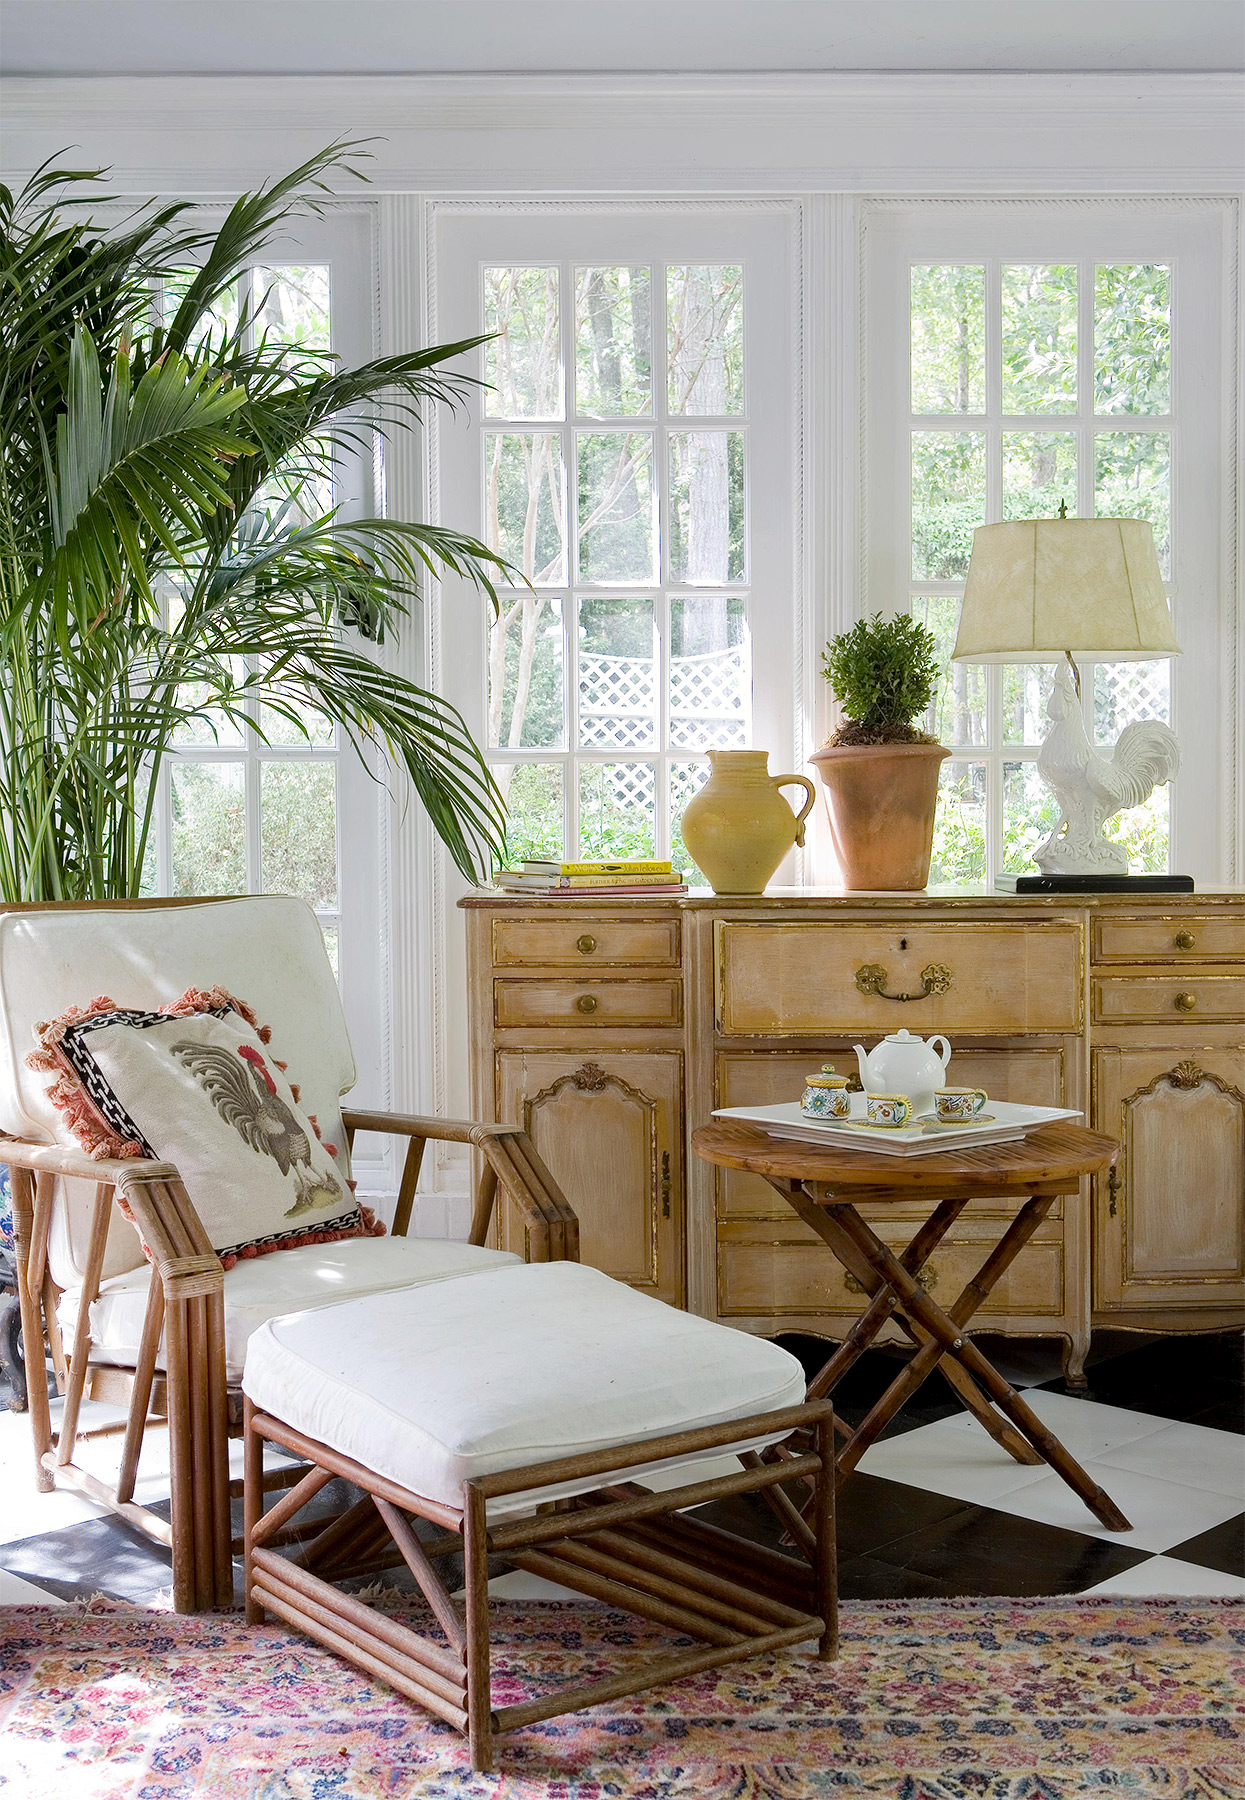 traditional chest and island-inspired seating in sunroom